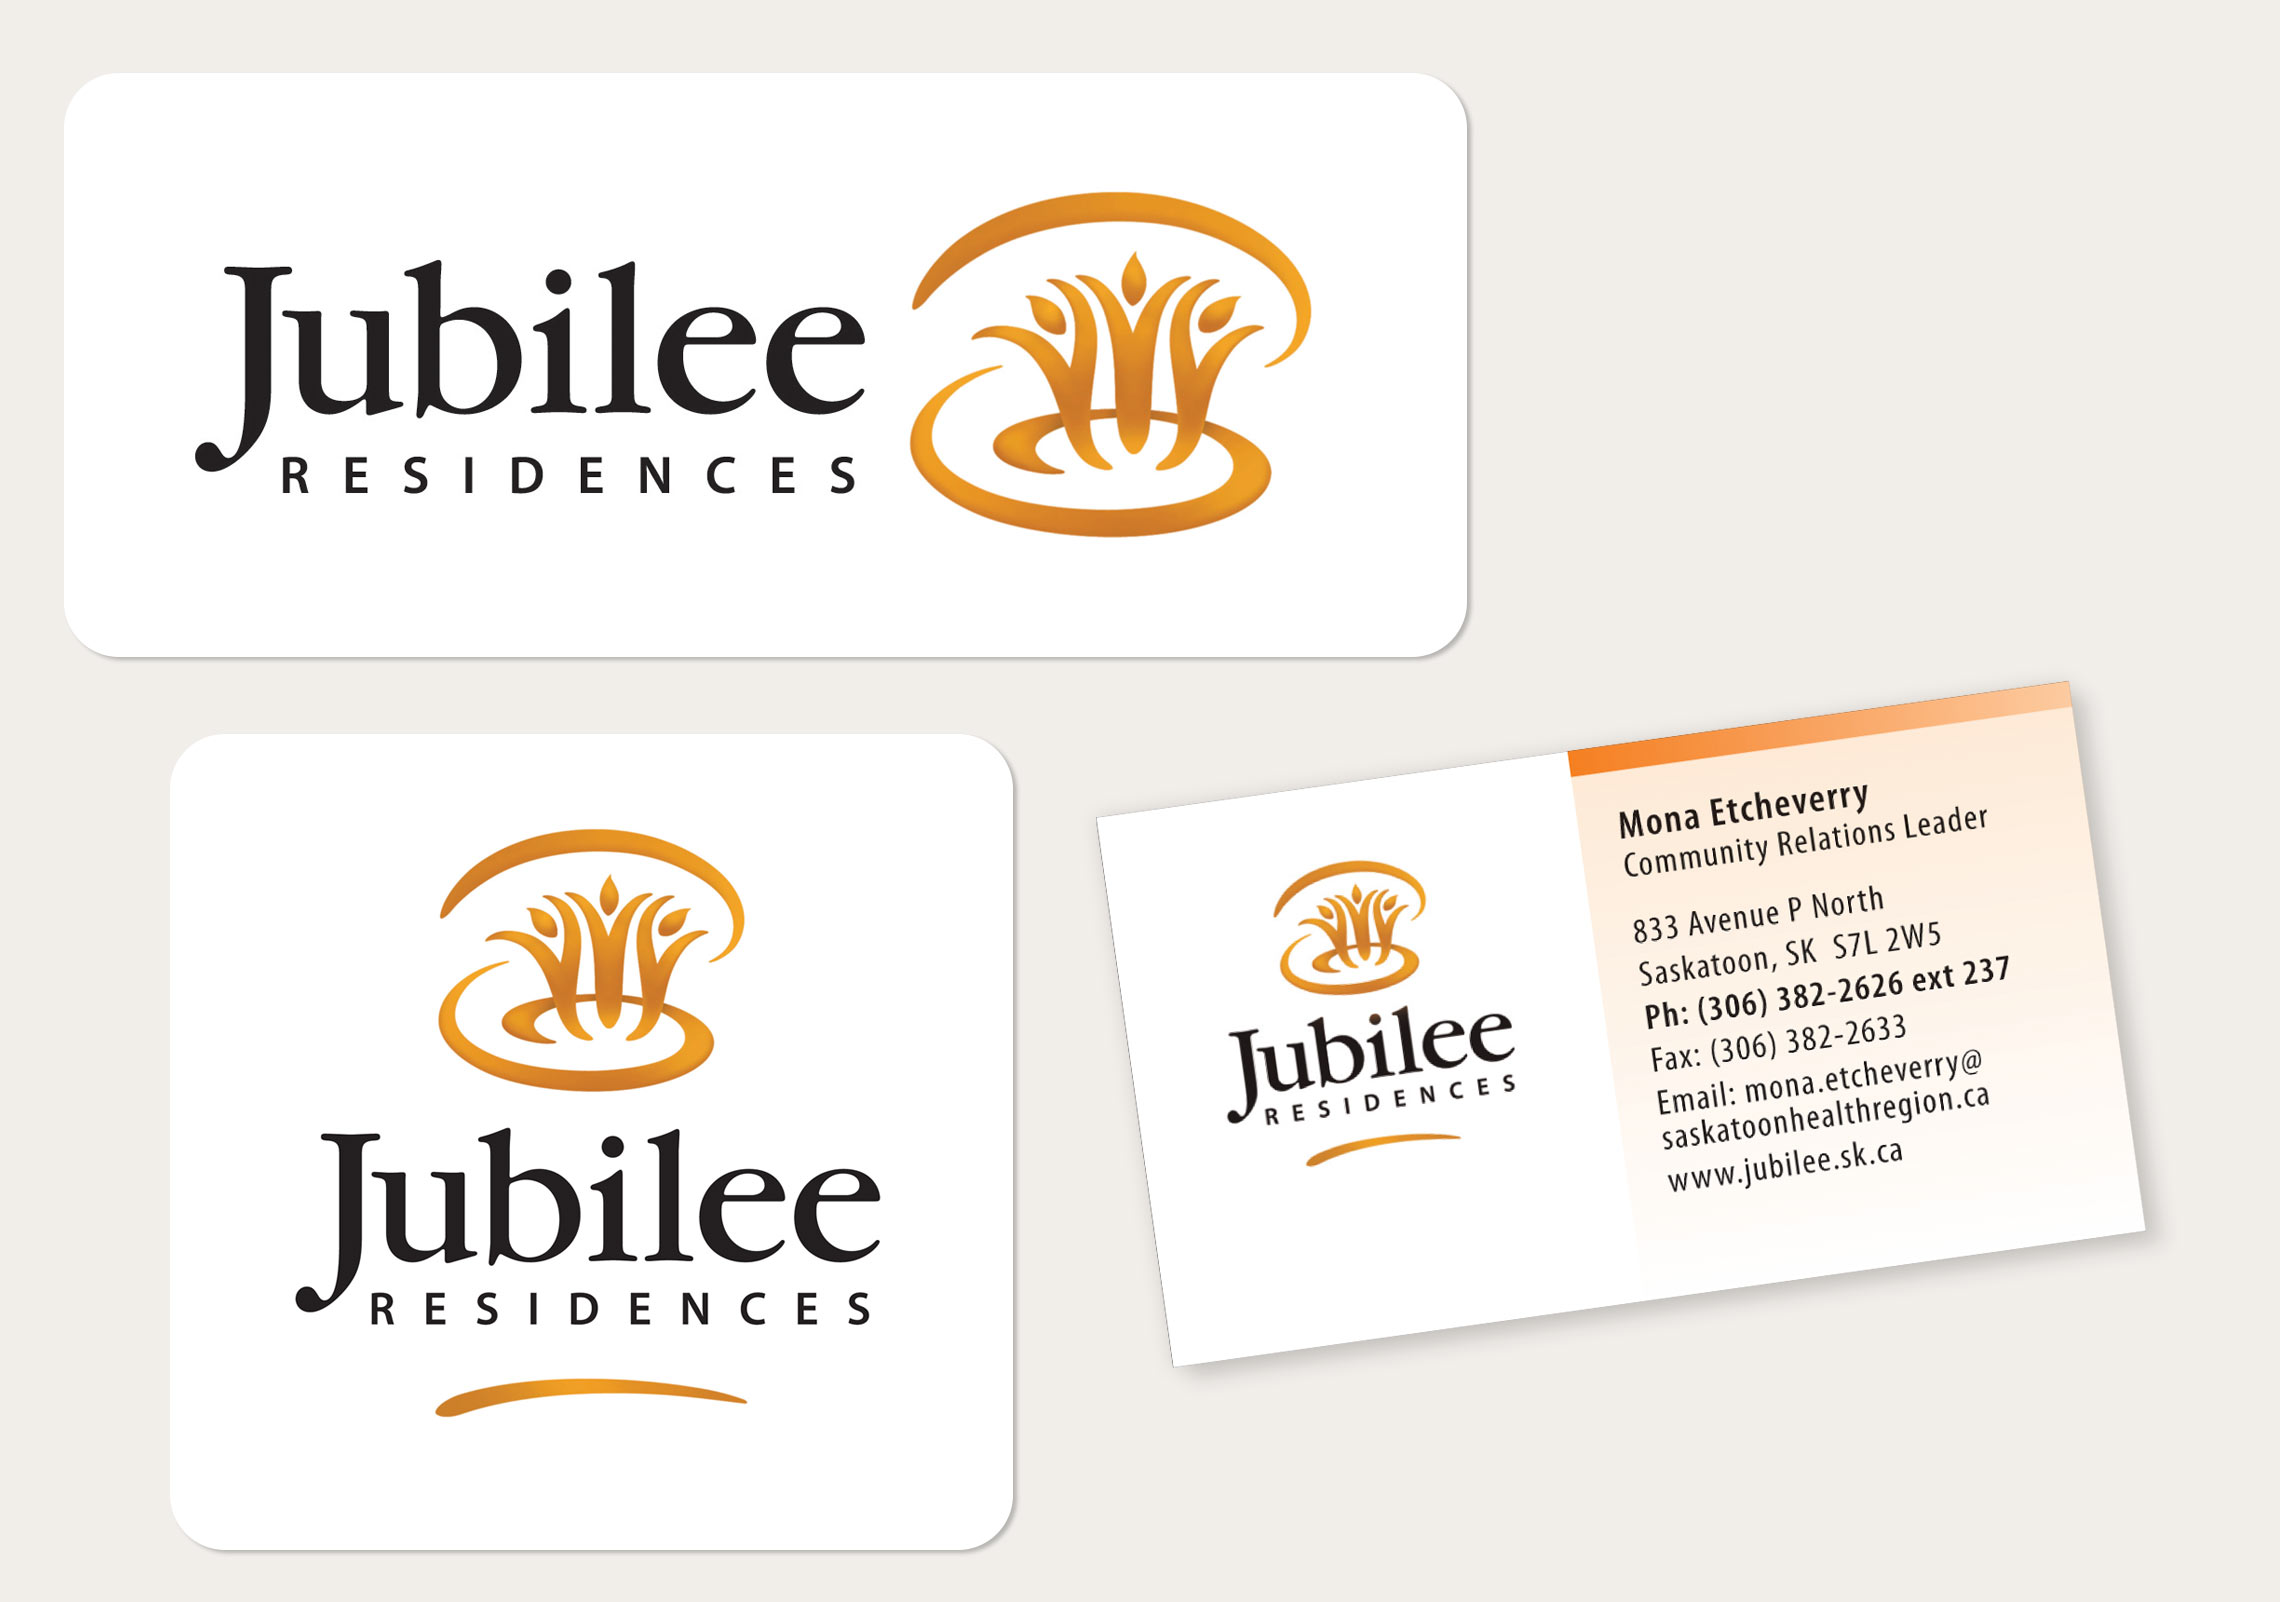 Jubilee Residences: Logo and Business Card